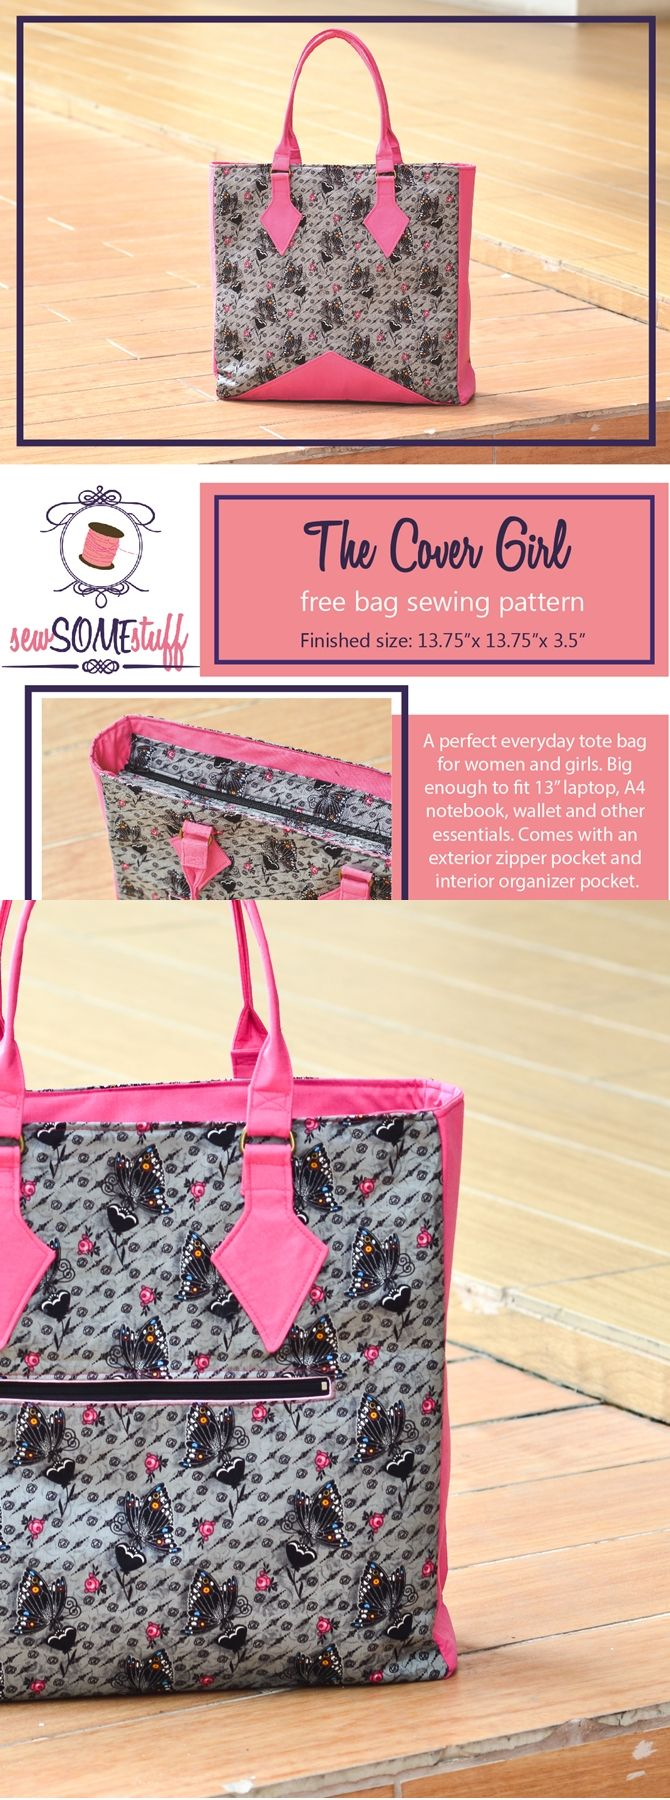 The Cover Girl Bag - FREE BAG SEWING PATTERN PDF | Taschen nähen ...